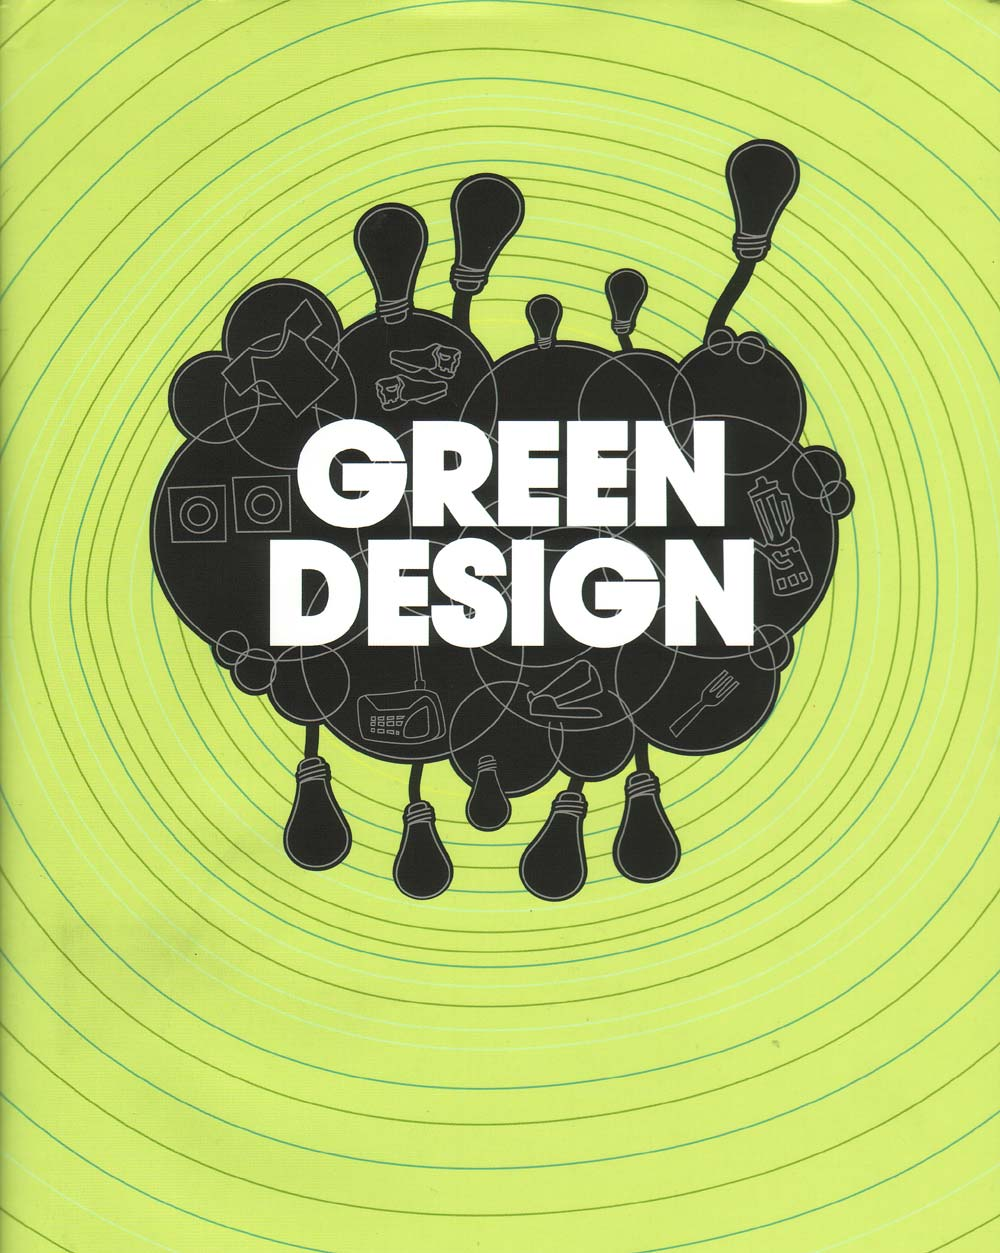 Blue book review green design review by david fowler for Green design